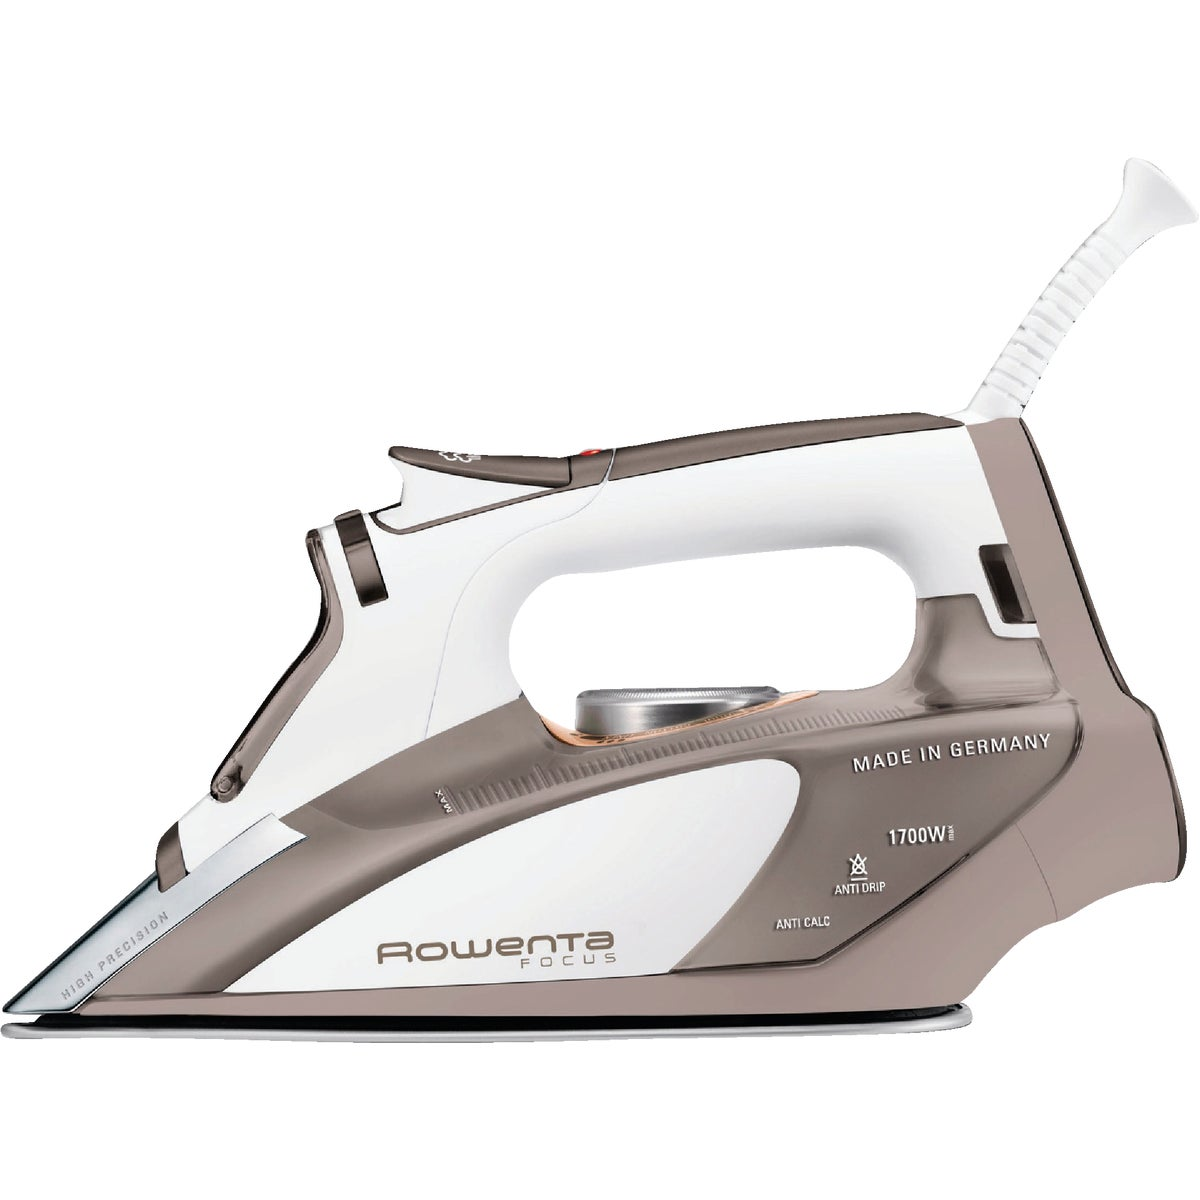 FOCUS STEAM IRON - DW-5080 by Rowenta Inc